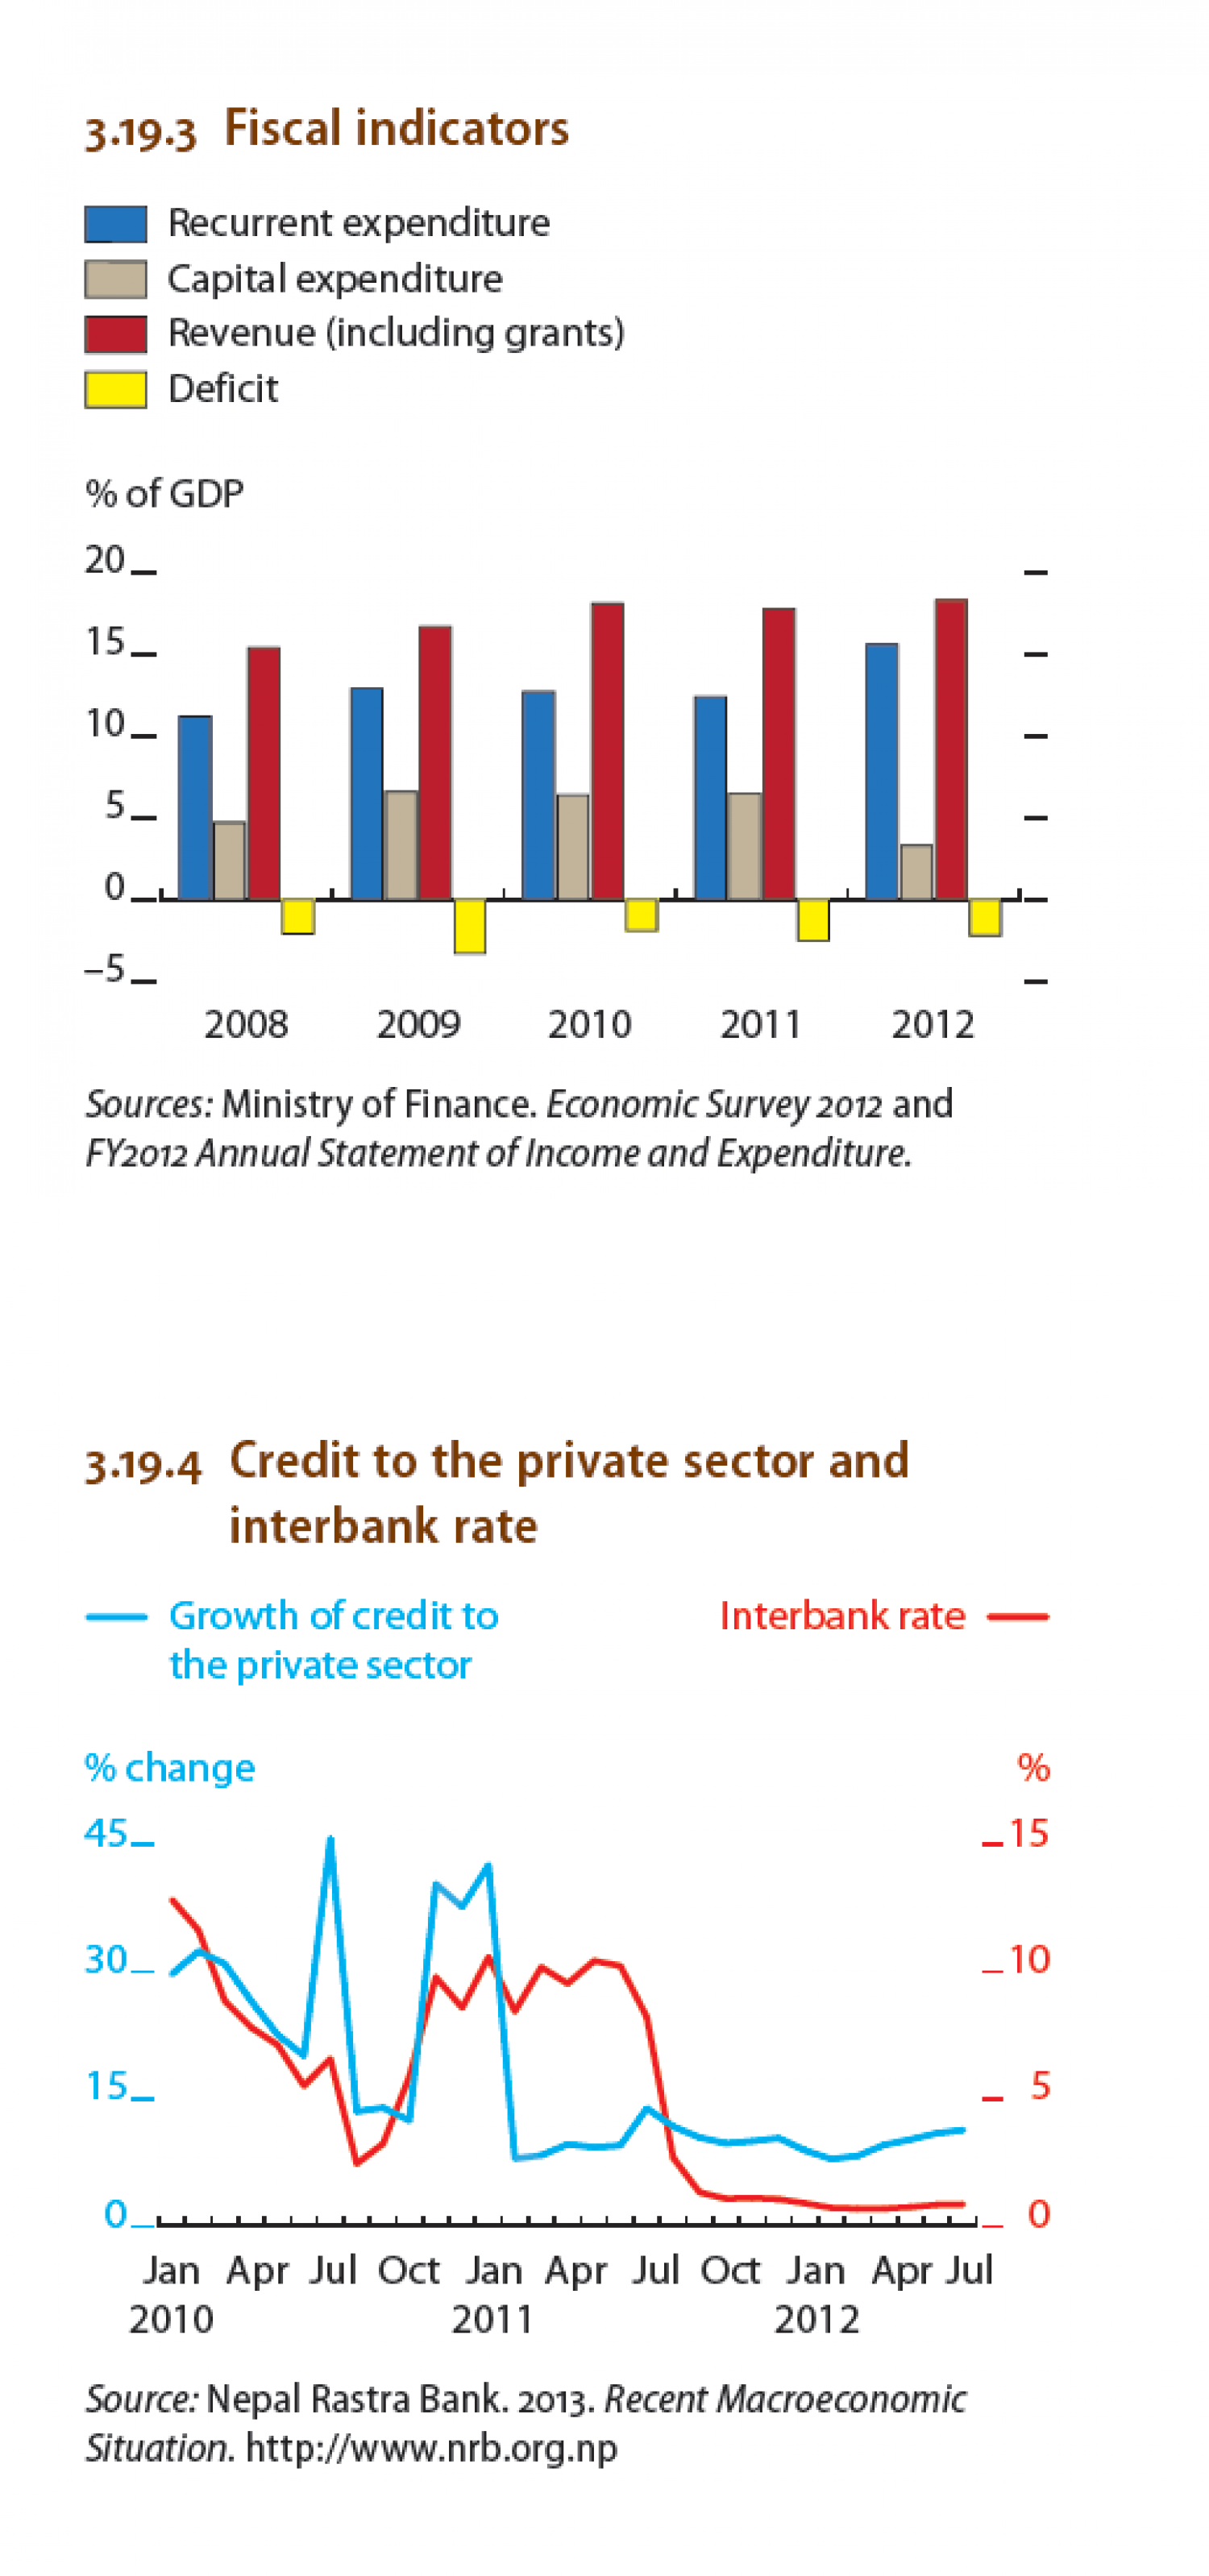 Nepal - Fiscal Indicators, Credit to the private sector and interbank rate Infographic